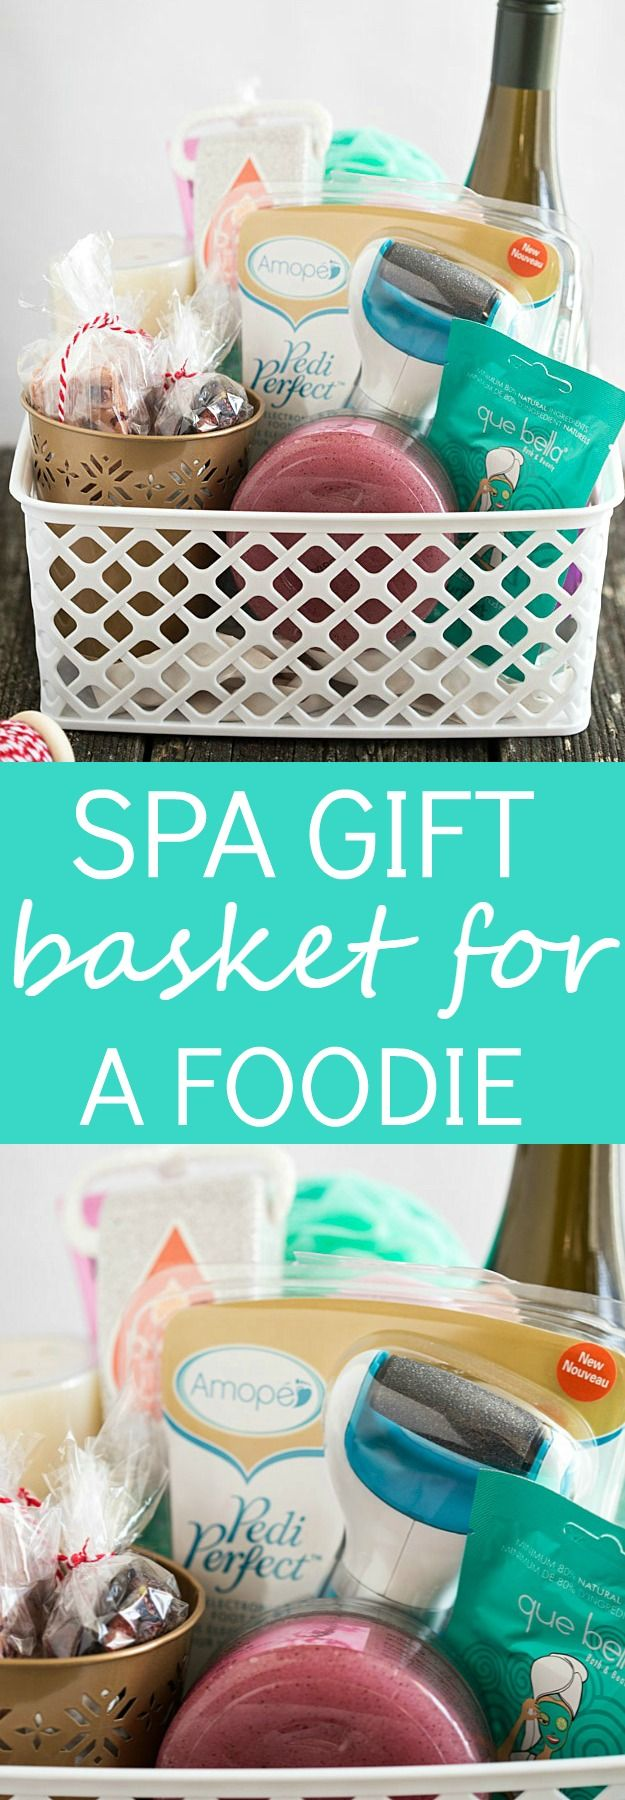 Spa Gift Basket Ideas for the Foodie - Give a unique gift this year!